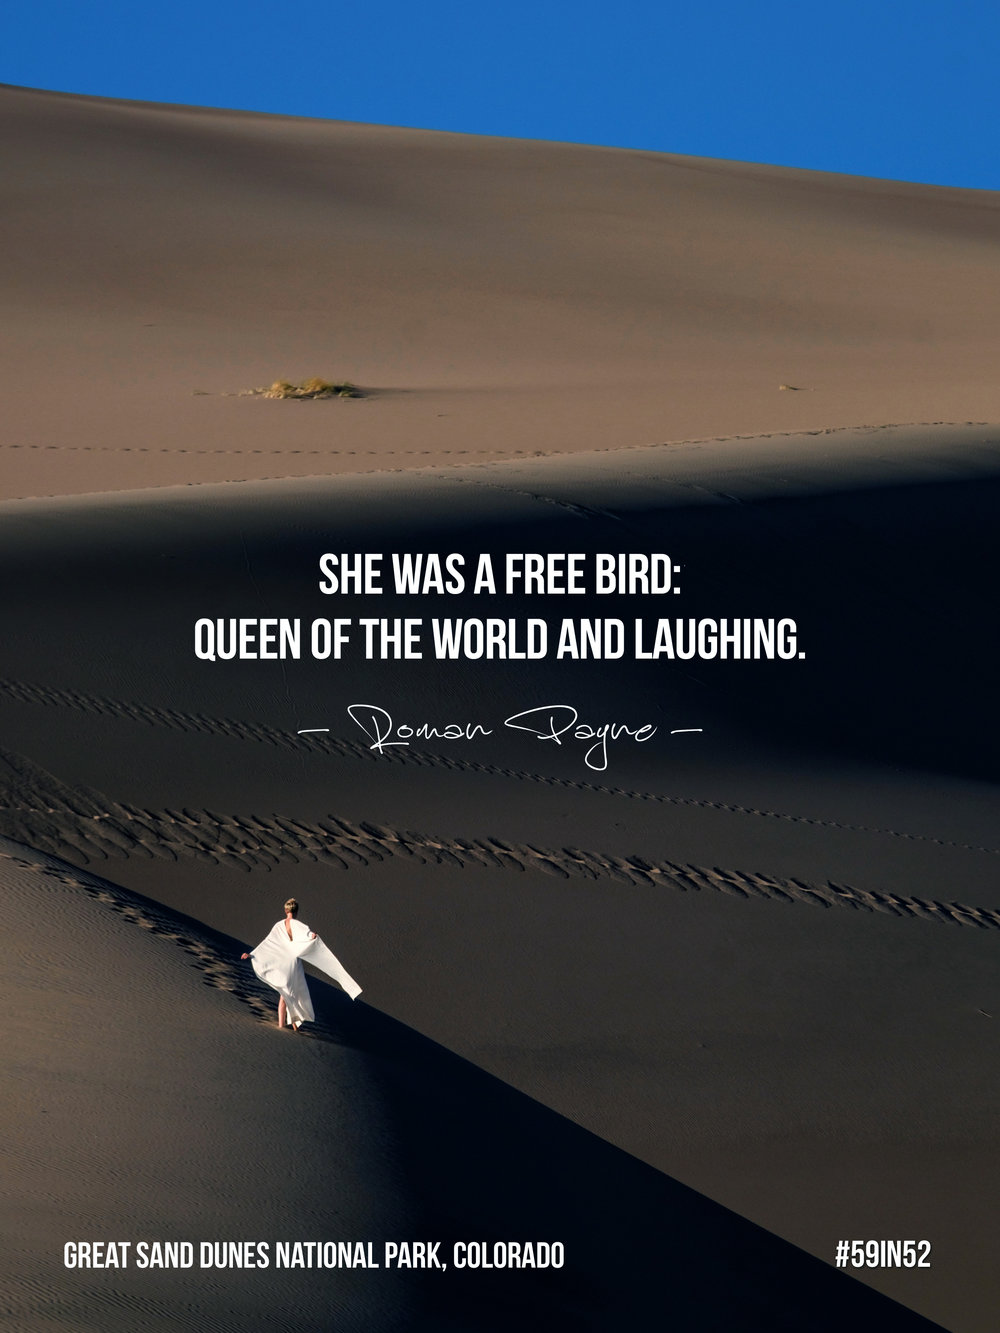 """She was a free bird: queen of the world and laughing."" - Roman Payne"